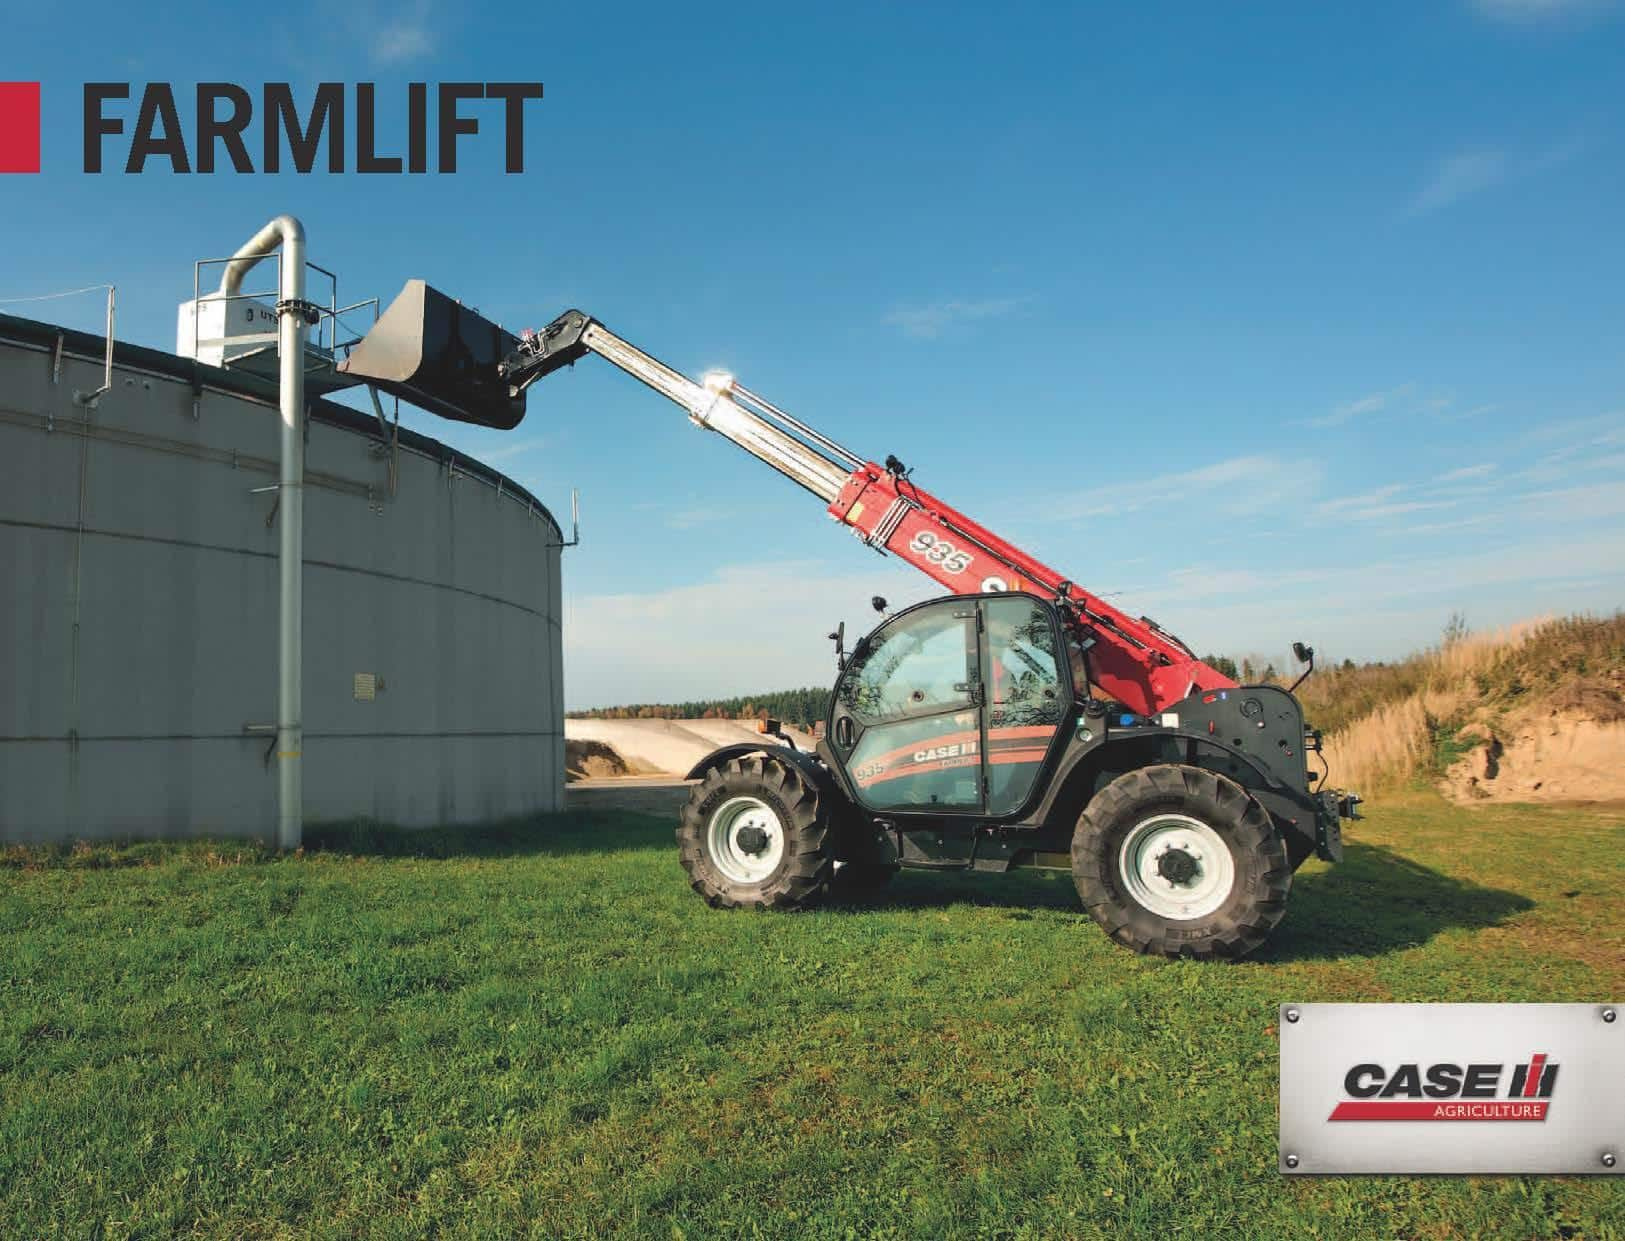 Telescopic Loader - Farmlift